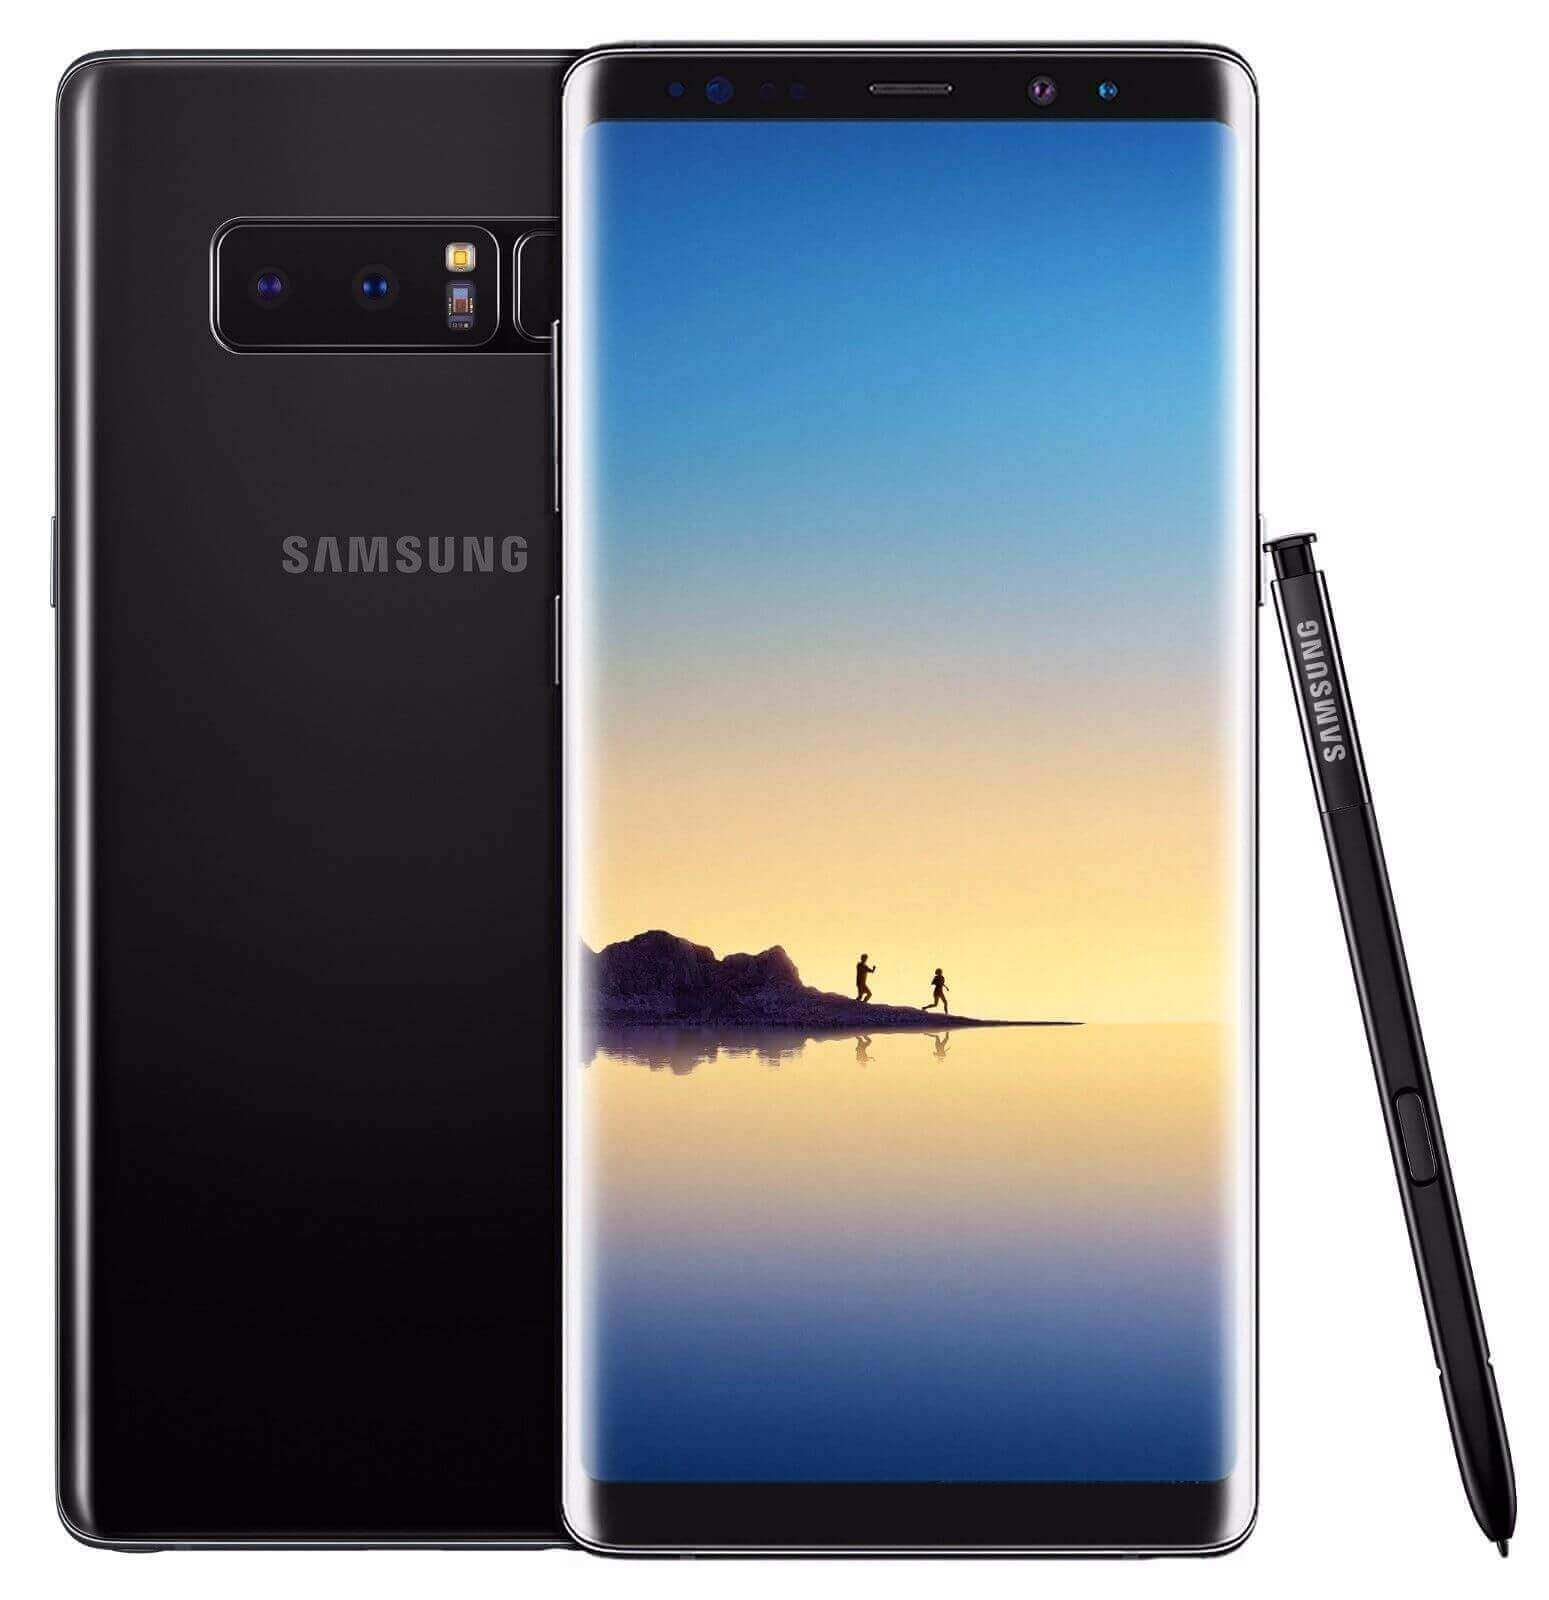 7. Samsung Galaxy Note 8 Best Smartphones July 2018 [Top 10] (Average Cost)